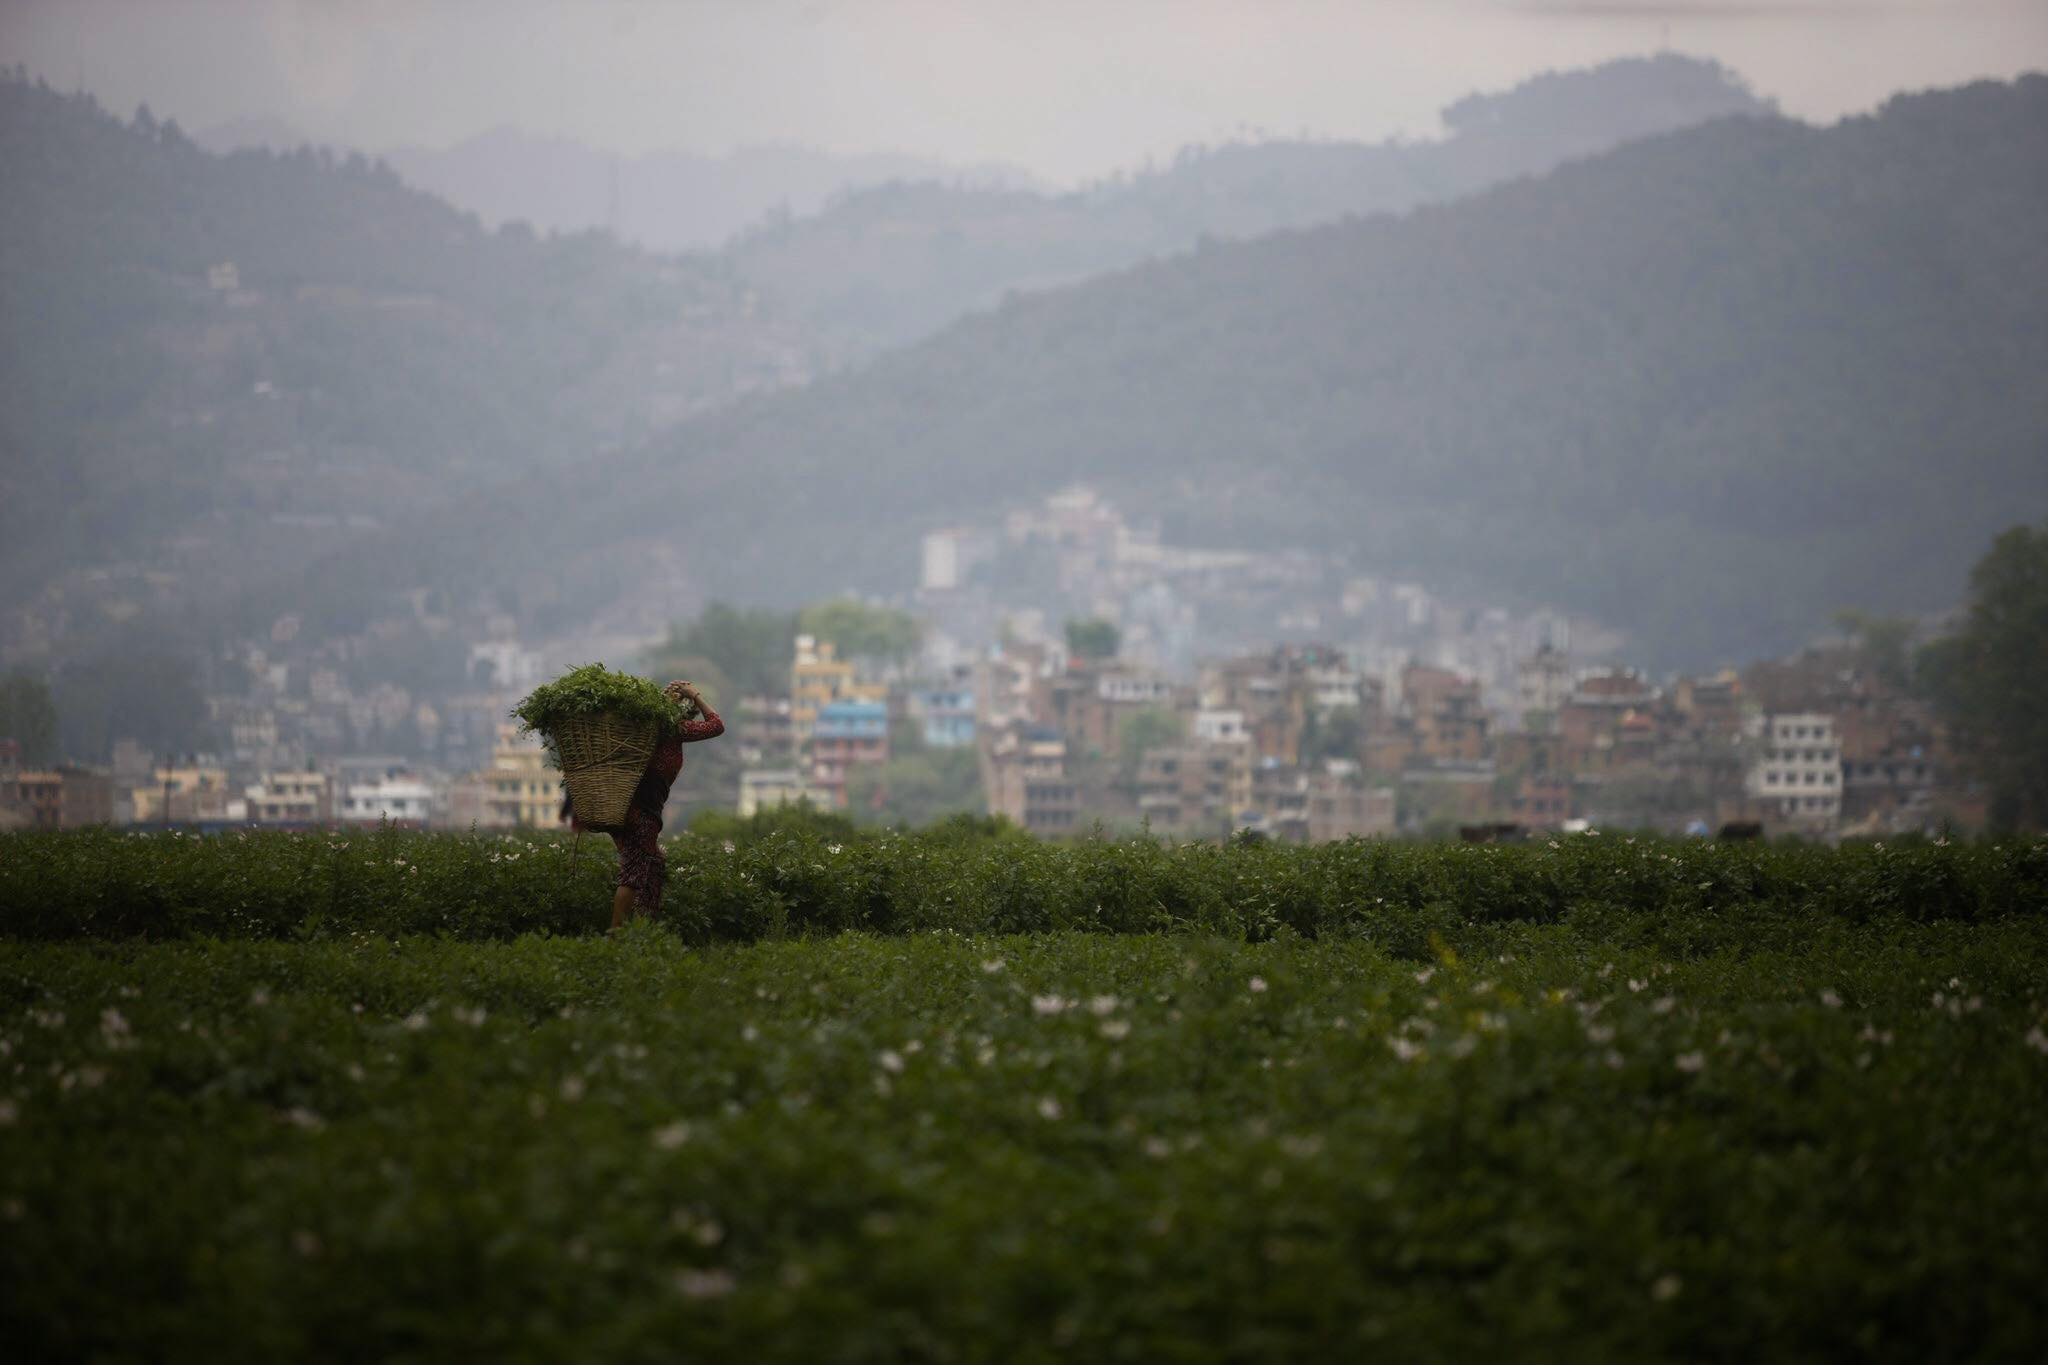 Pandemic offers chance to revive farming